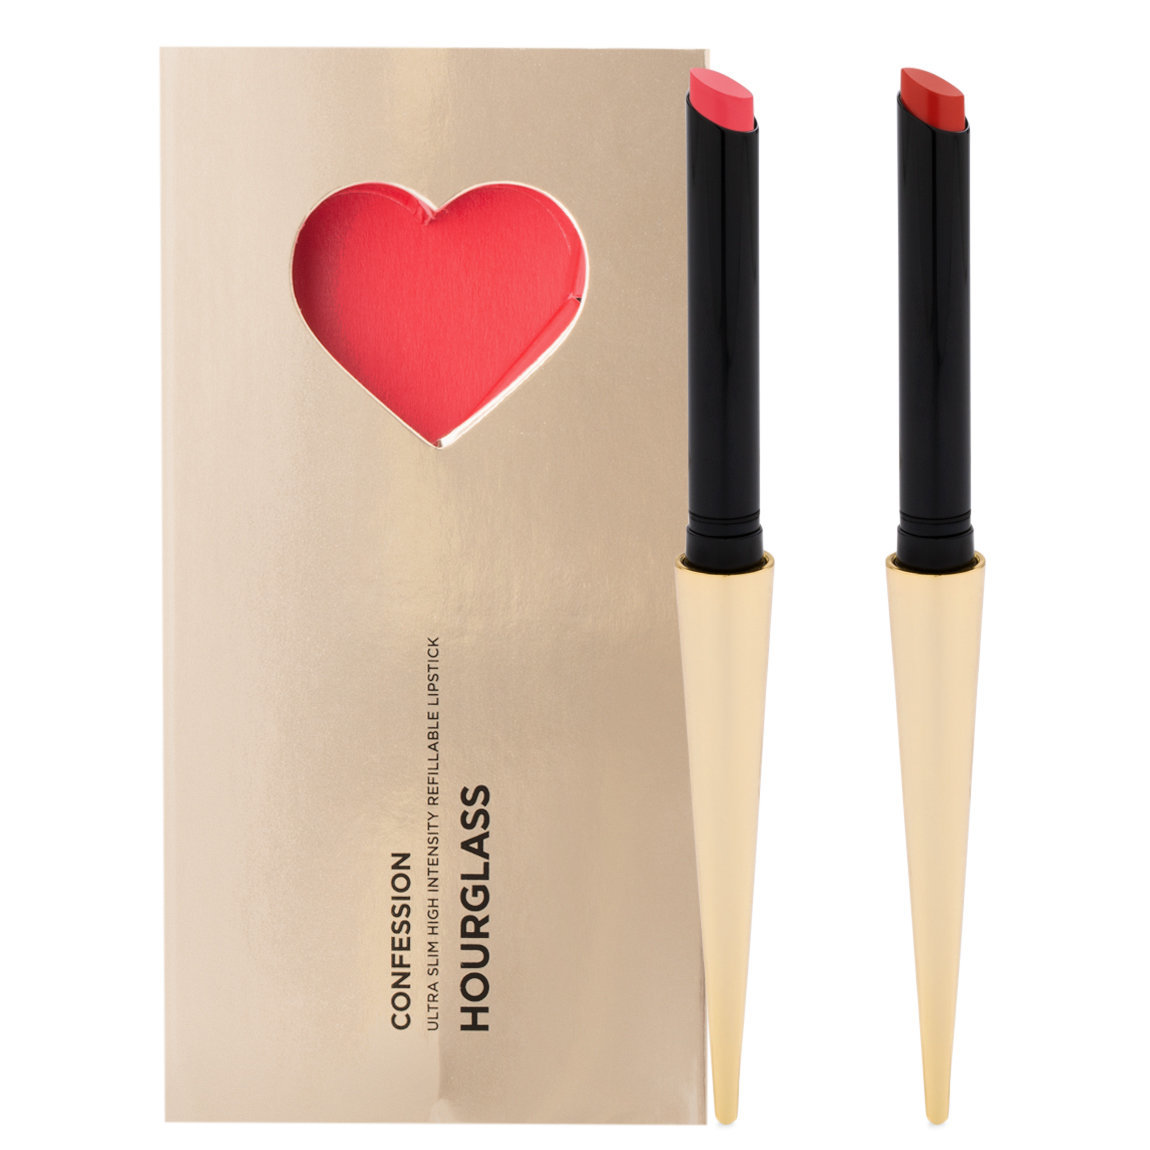 Hourglass Confession Ultra Slim High Intensity Refillable Lipstick Valentine's Day Set All of Me / Loves All of You product swatch.